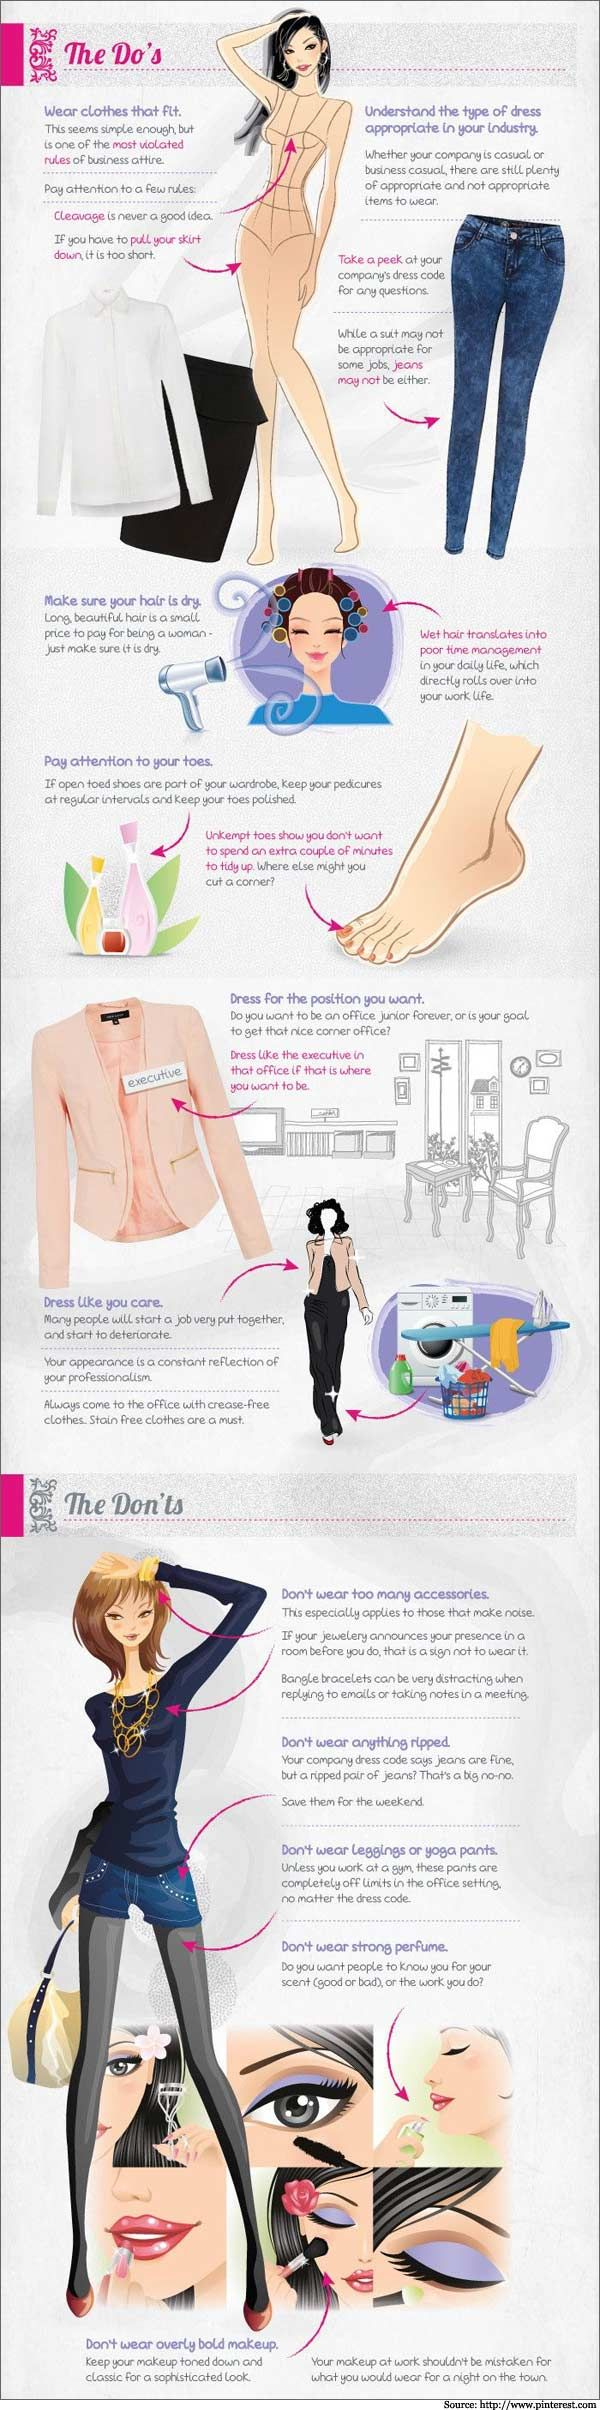 Interview Dress Codes And Hairstyles On Pinterest - Www